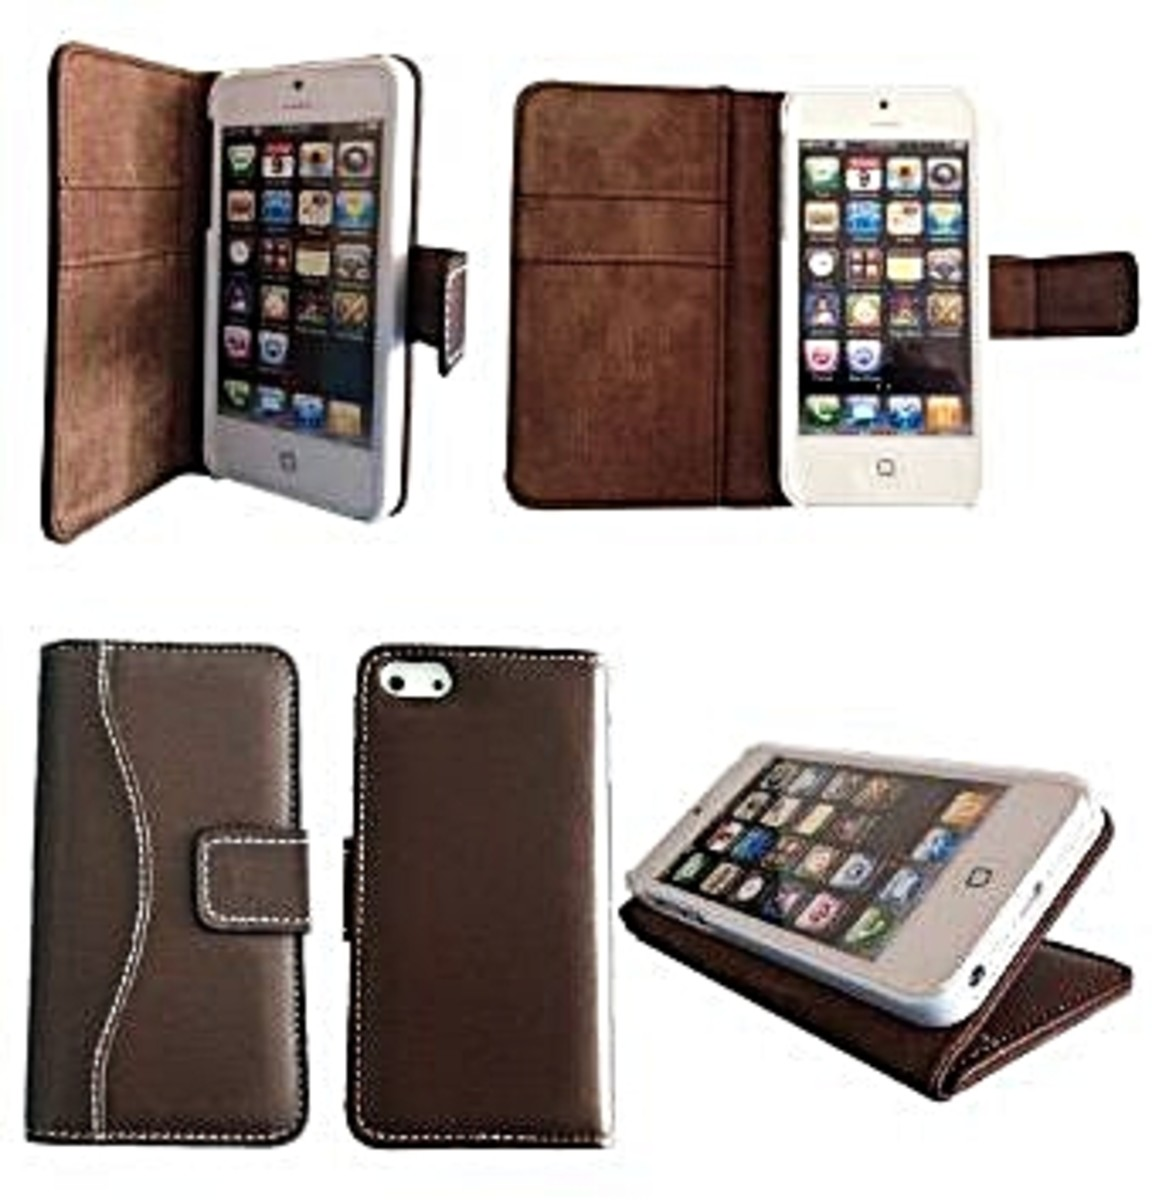 Cell Phone Case - 2013 Best Gifts for Men: Cool Gadgets Gift Ideas, by Rosie2010